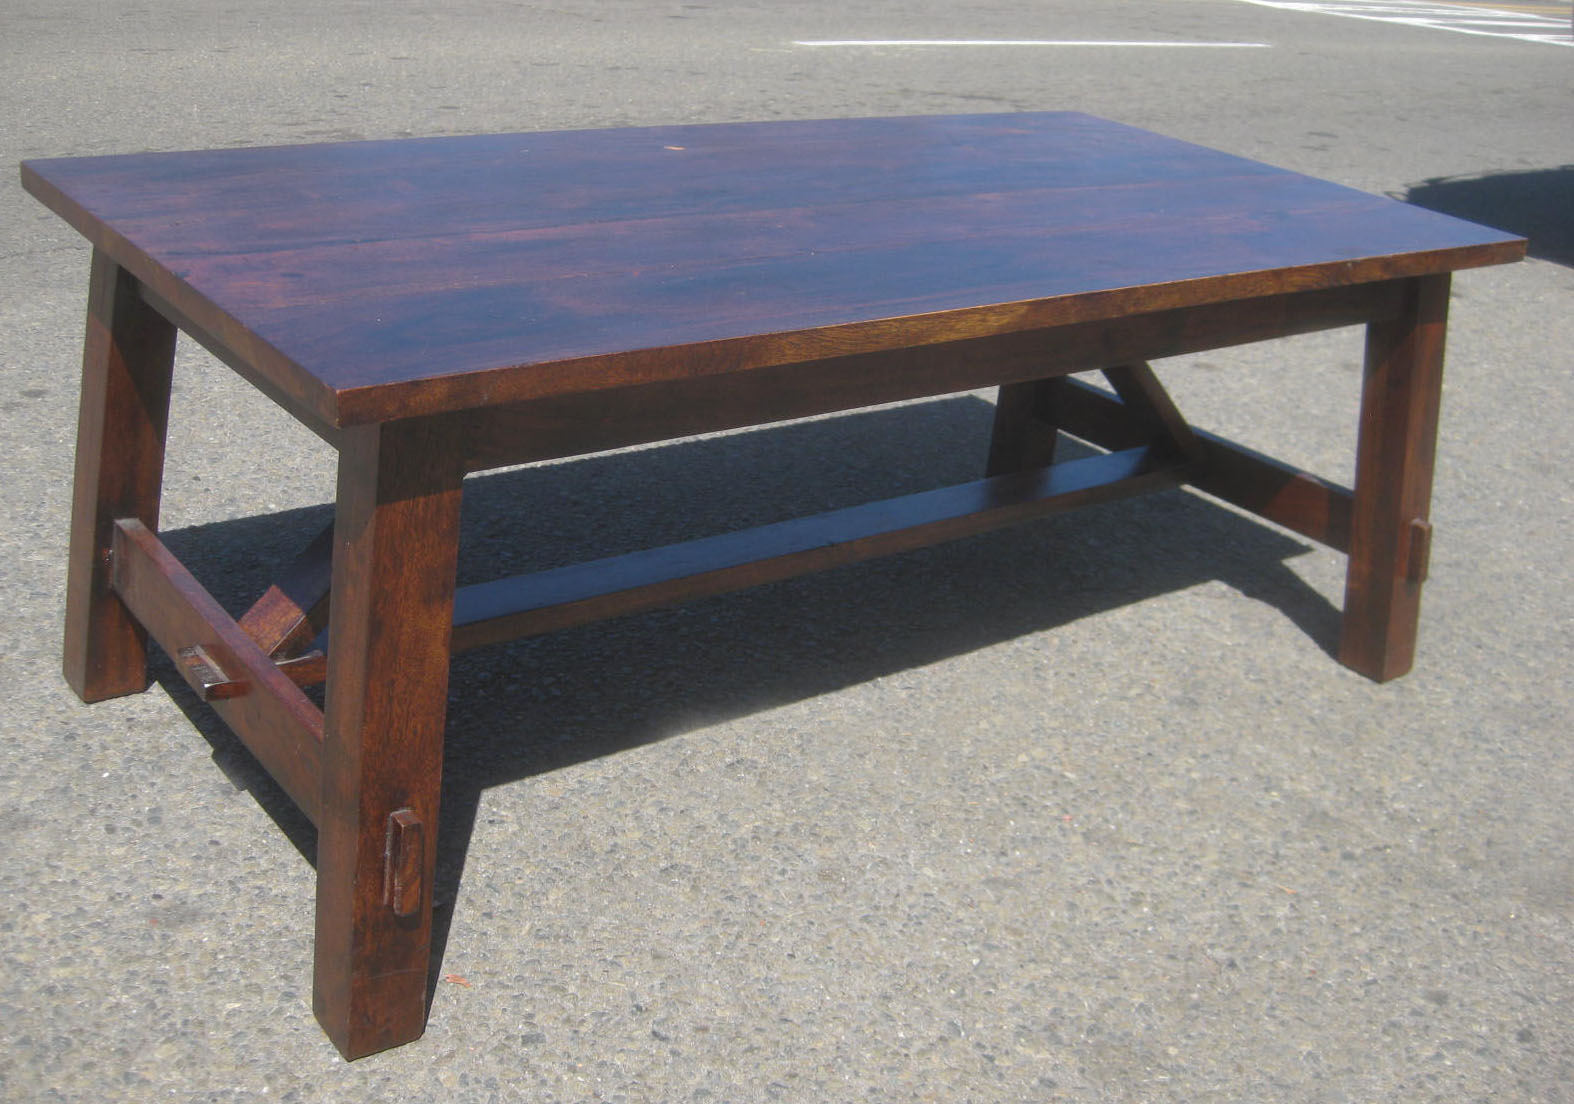 Uhuru Furniture Collectibles Sold Solid Teak Coffee Table 70